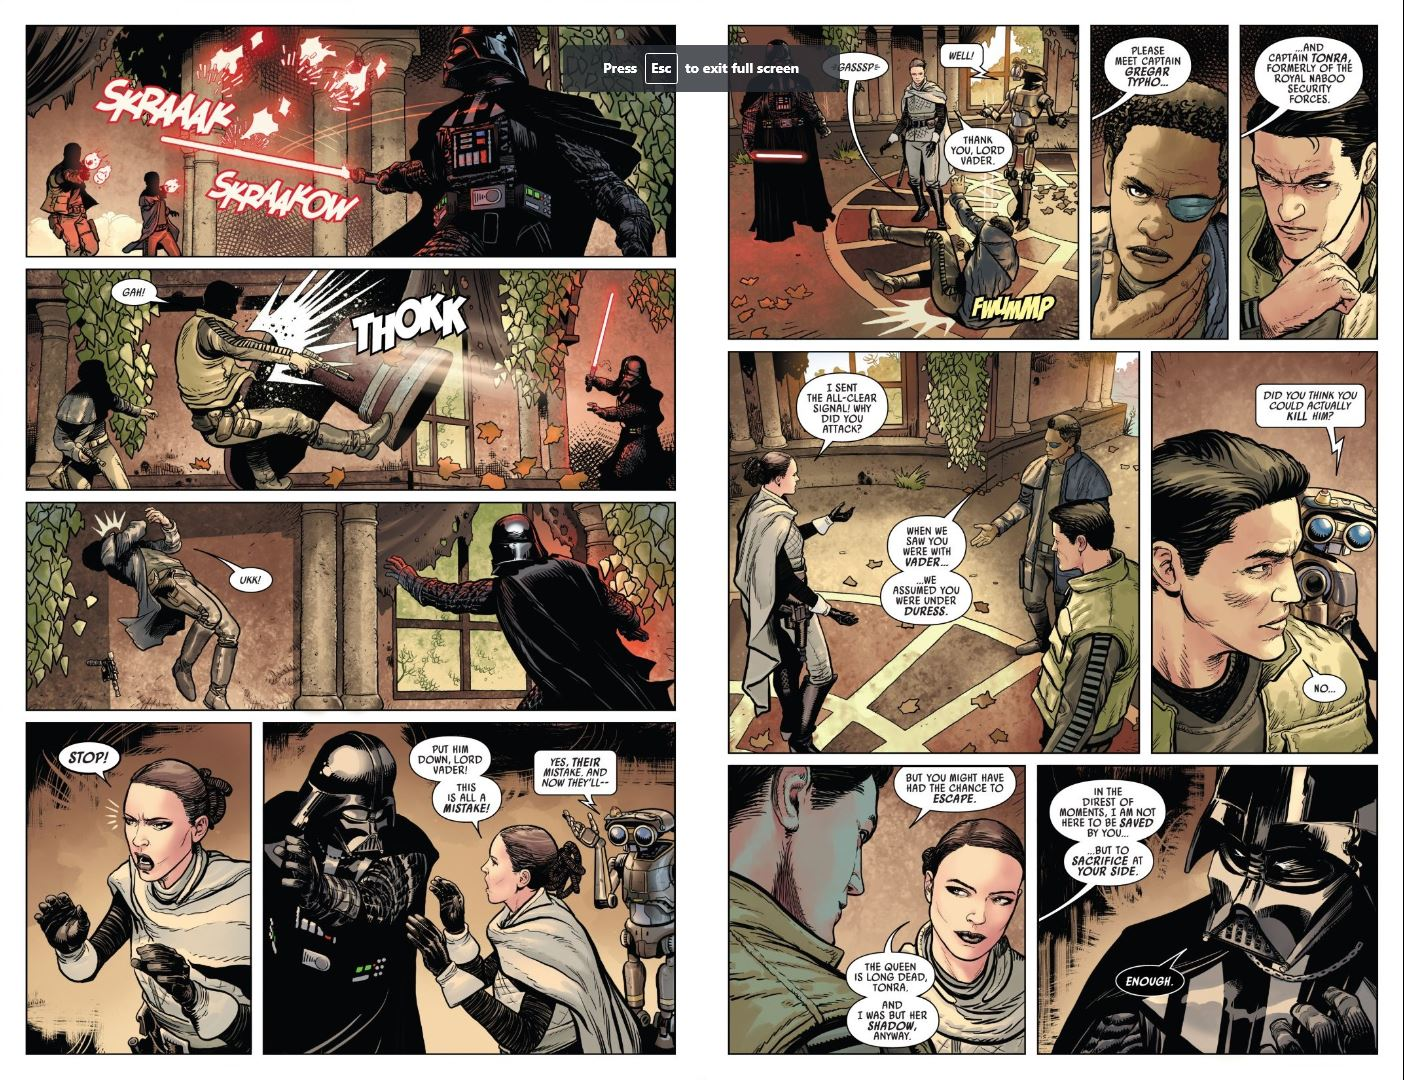 Issue #3 Star Wars Darth Vader Captain Typho and Tonra